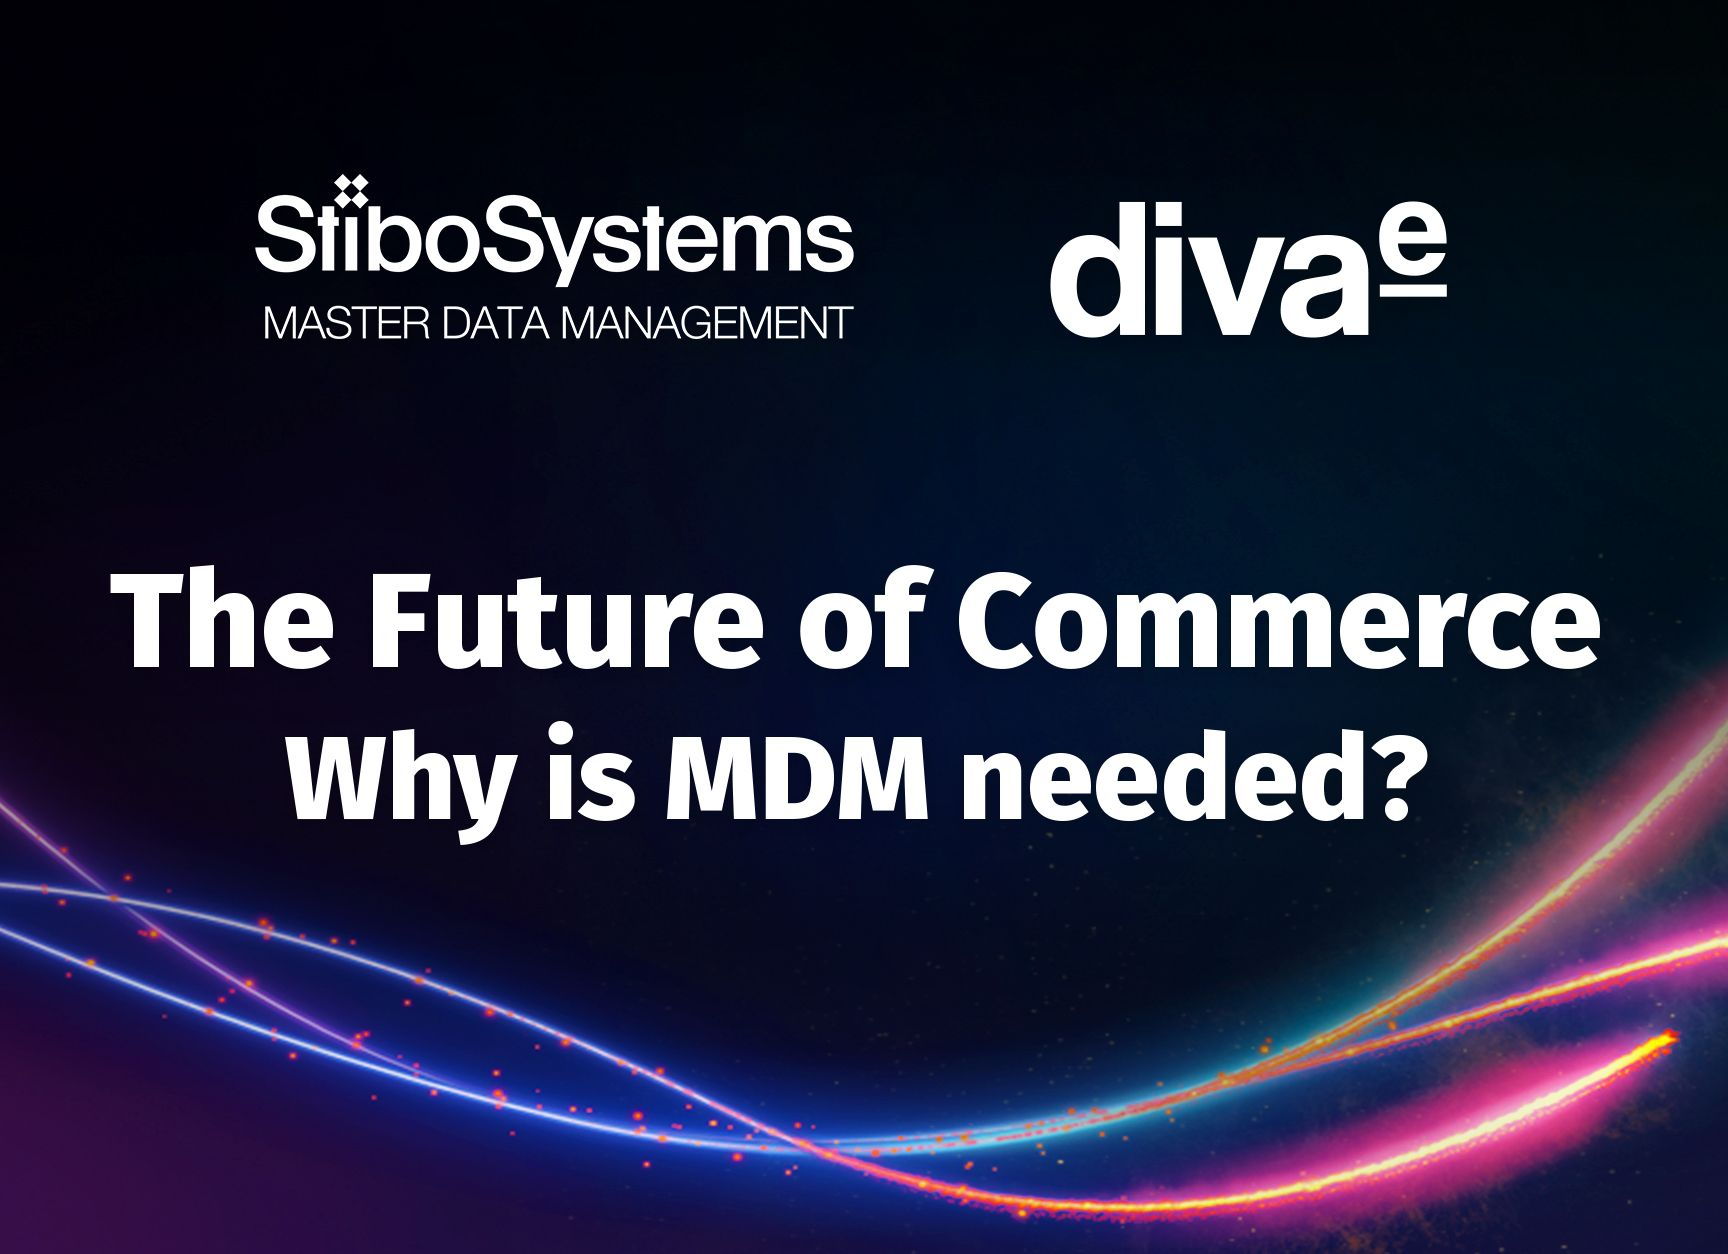 Webinar: The Future of Commerce - Why is MDM needed?